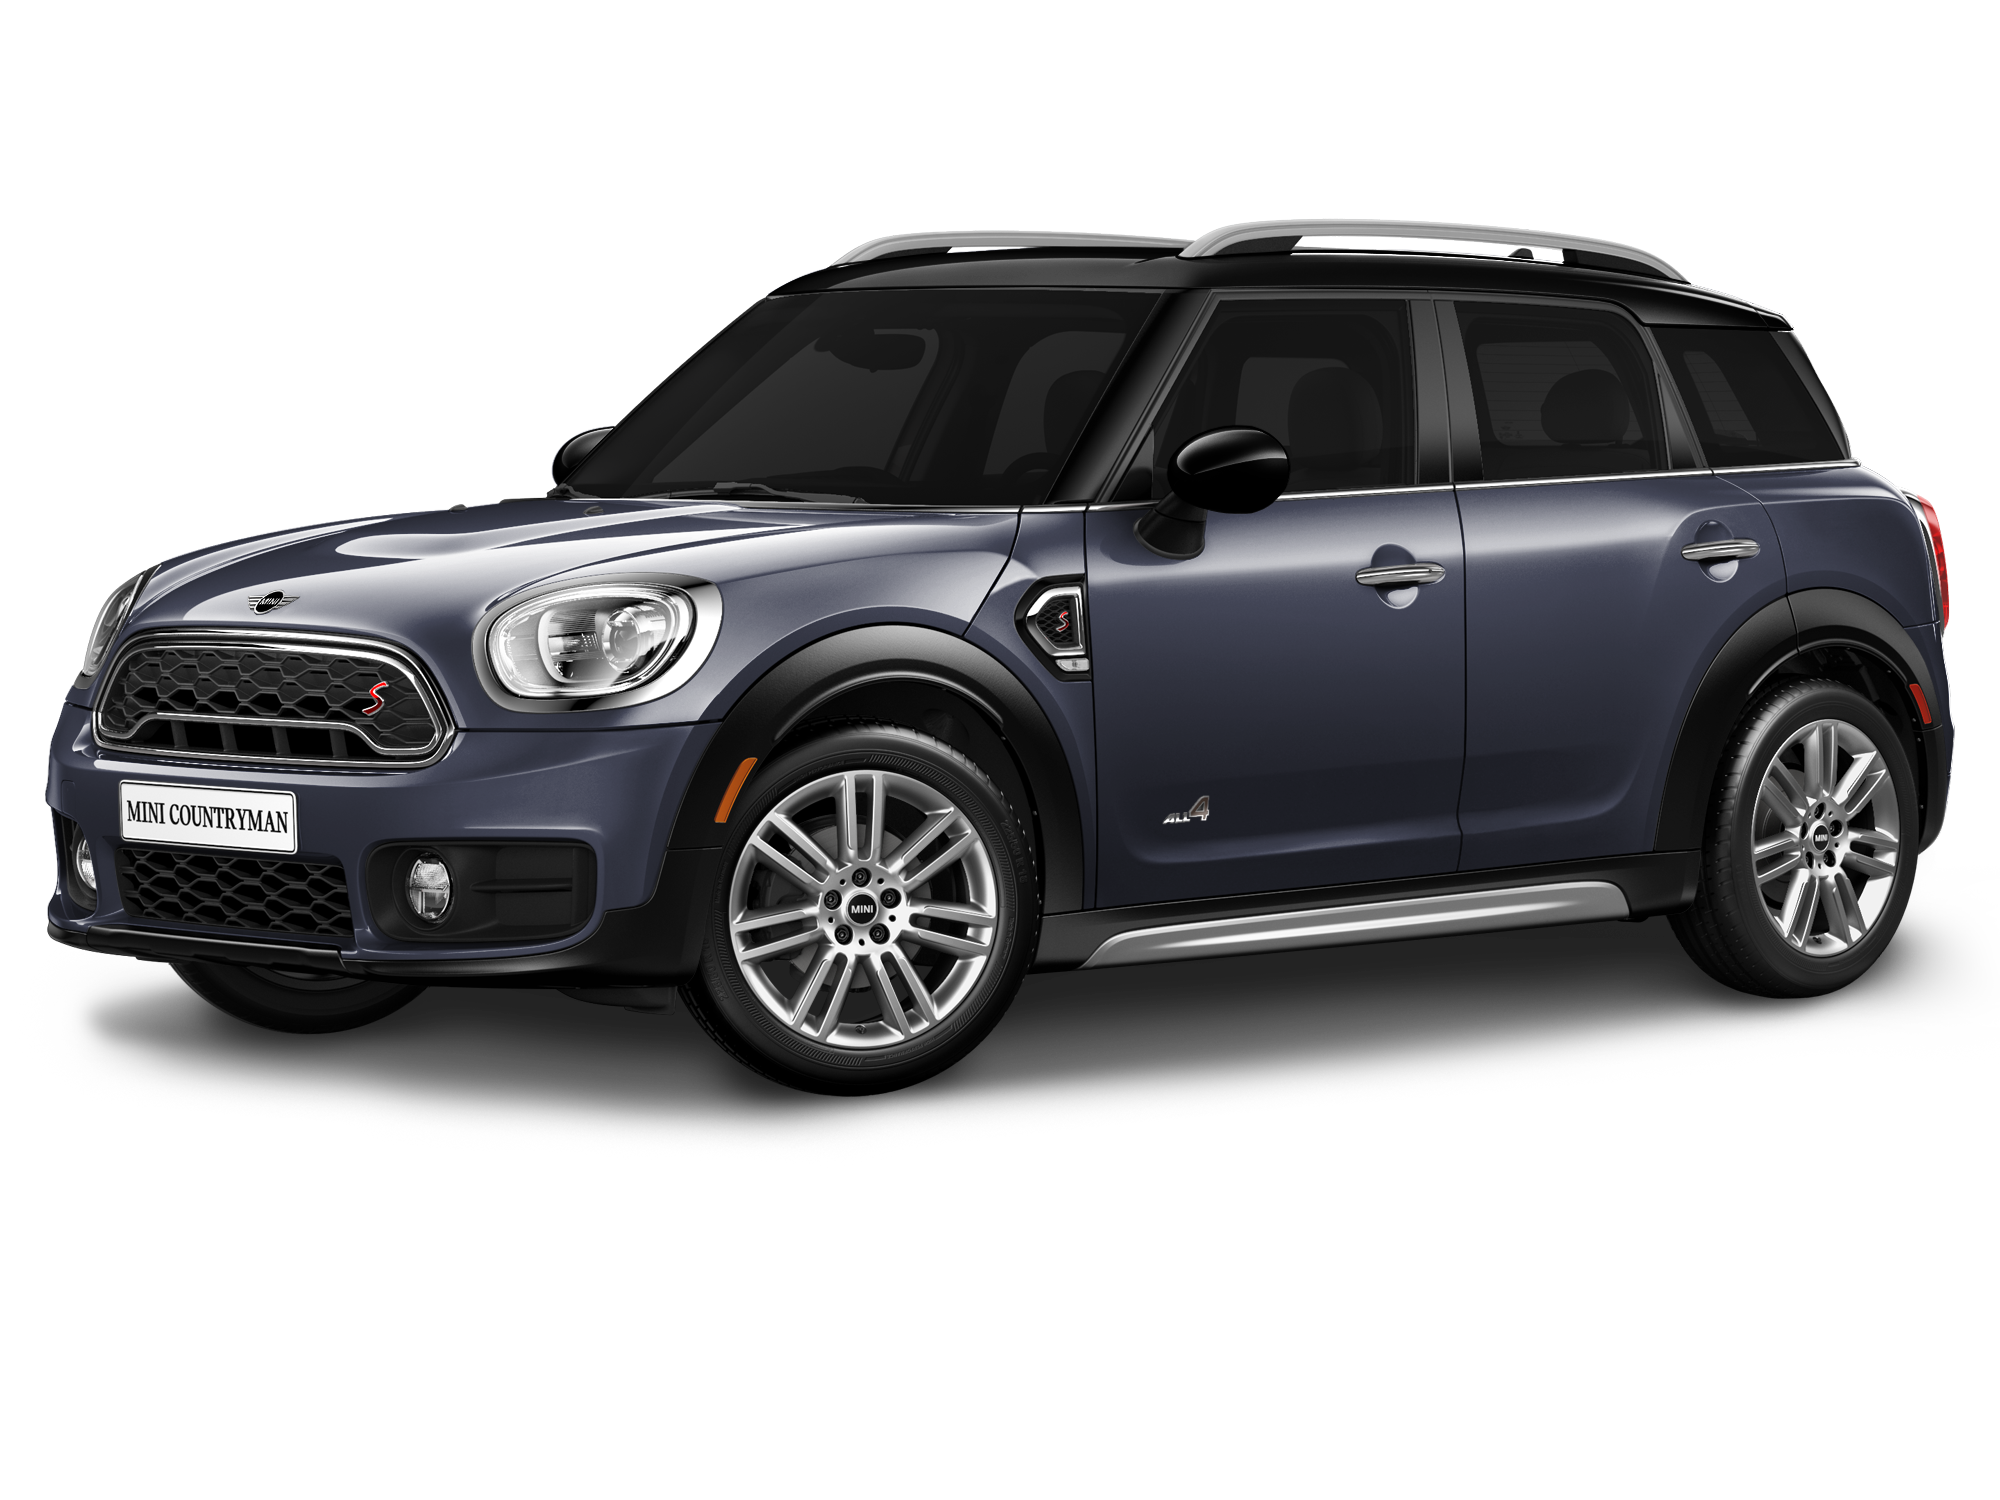 New 2019 Mini Cooper S Countryman All4 Cars For Sale In White Plains Ny